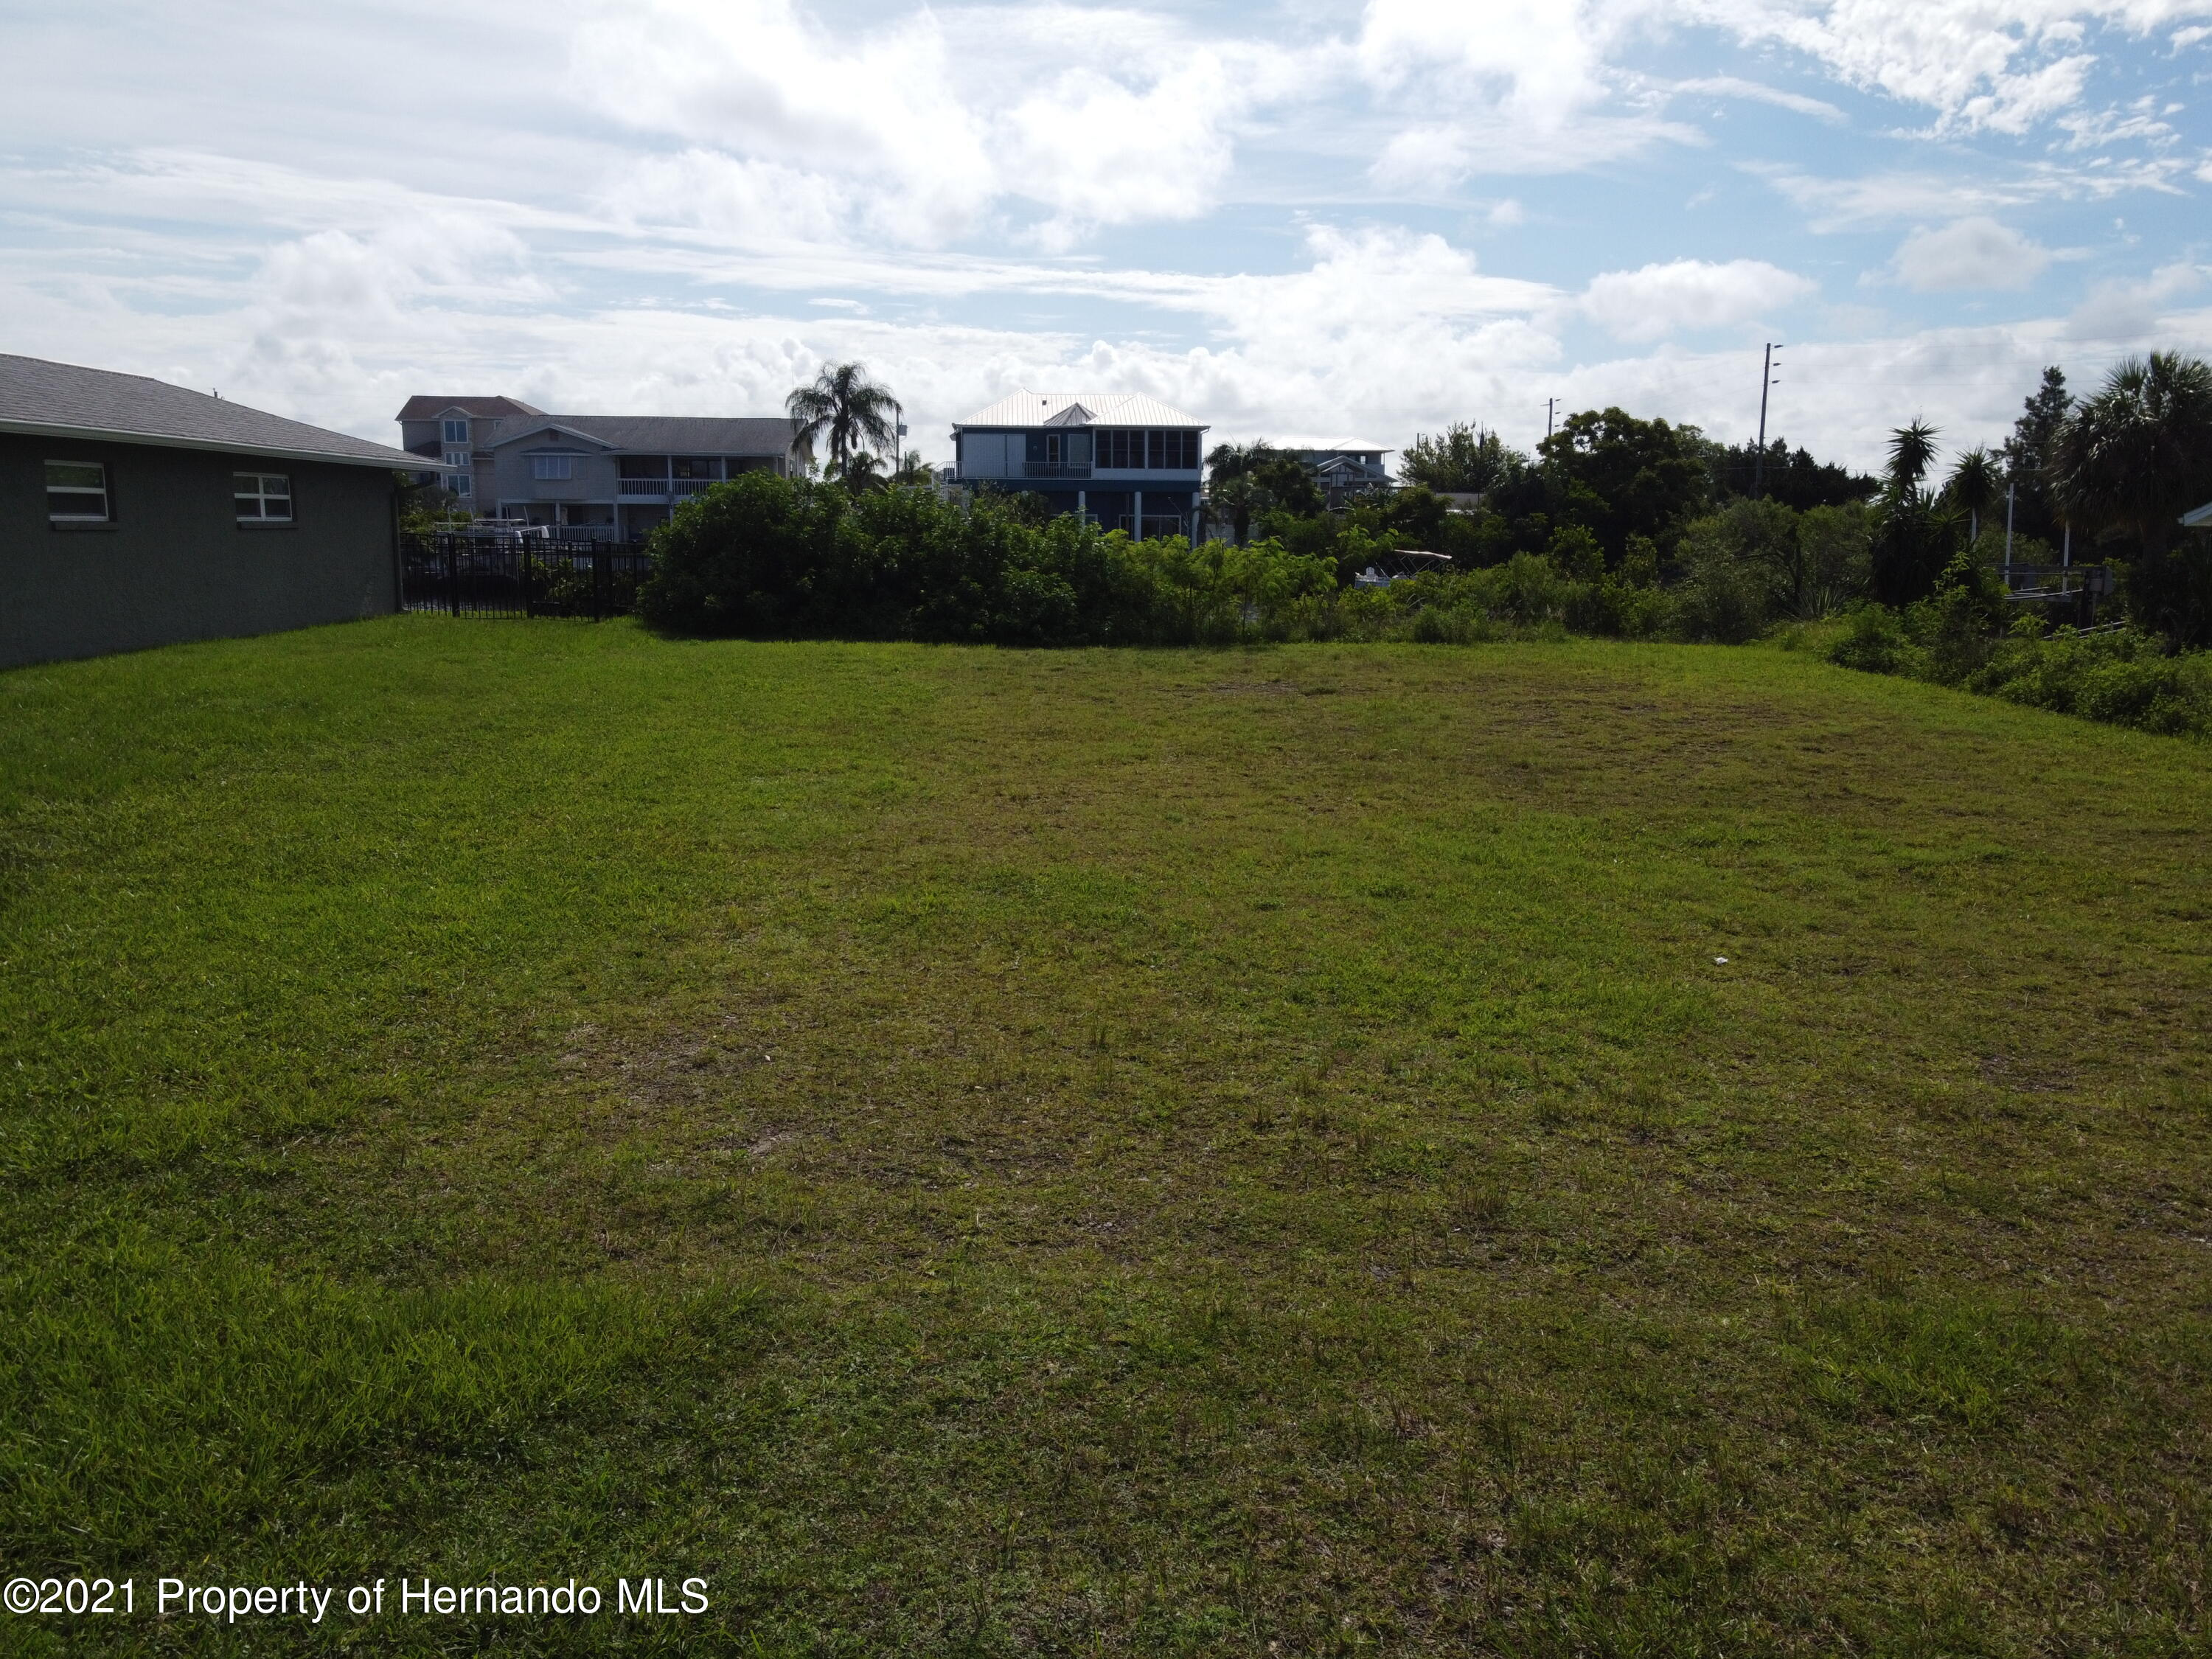 Details for Lot 40 Orchid Drive, Hernando Beach, FL 34607